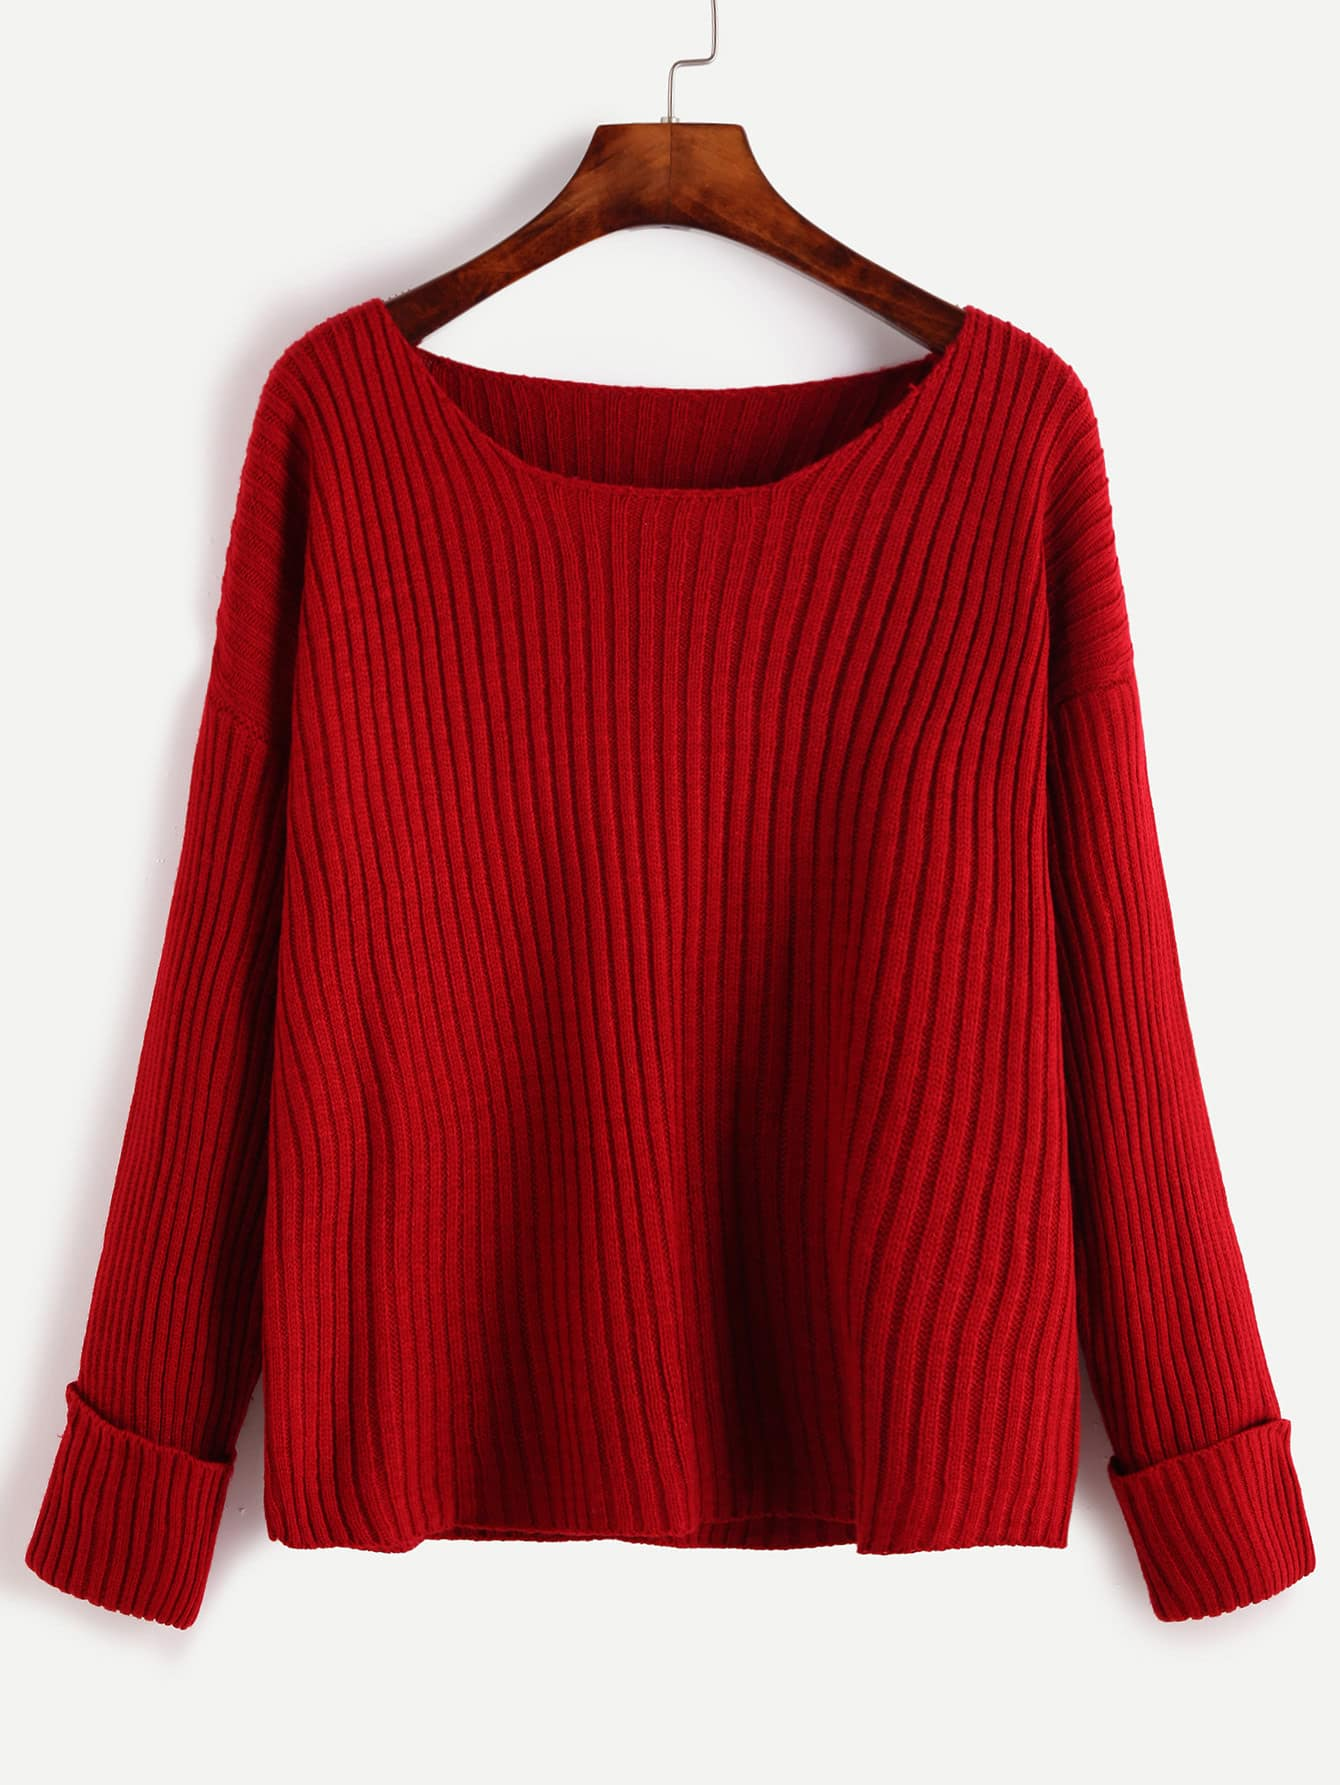 Red Ribbed Knit Drop Shoulder Sweater sweater160929455